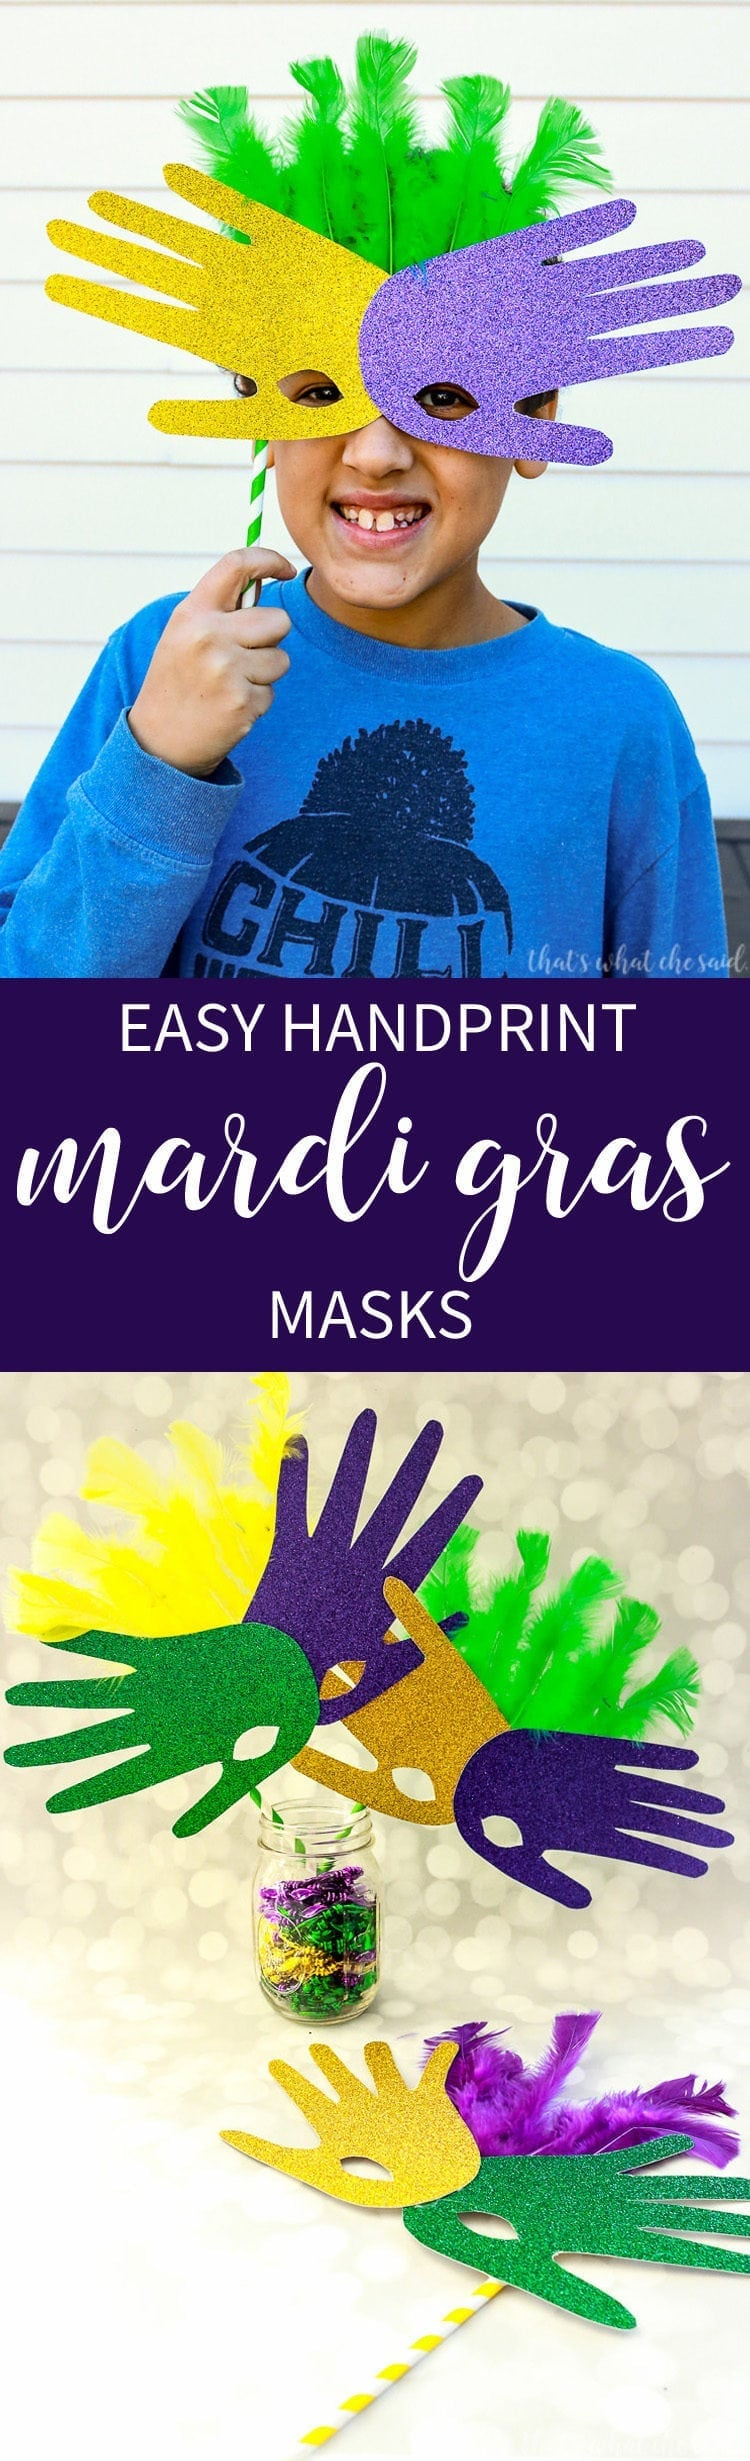 Handprint Mask - Mardi Gras Craft Project